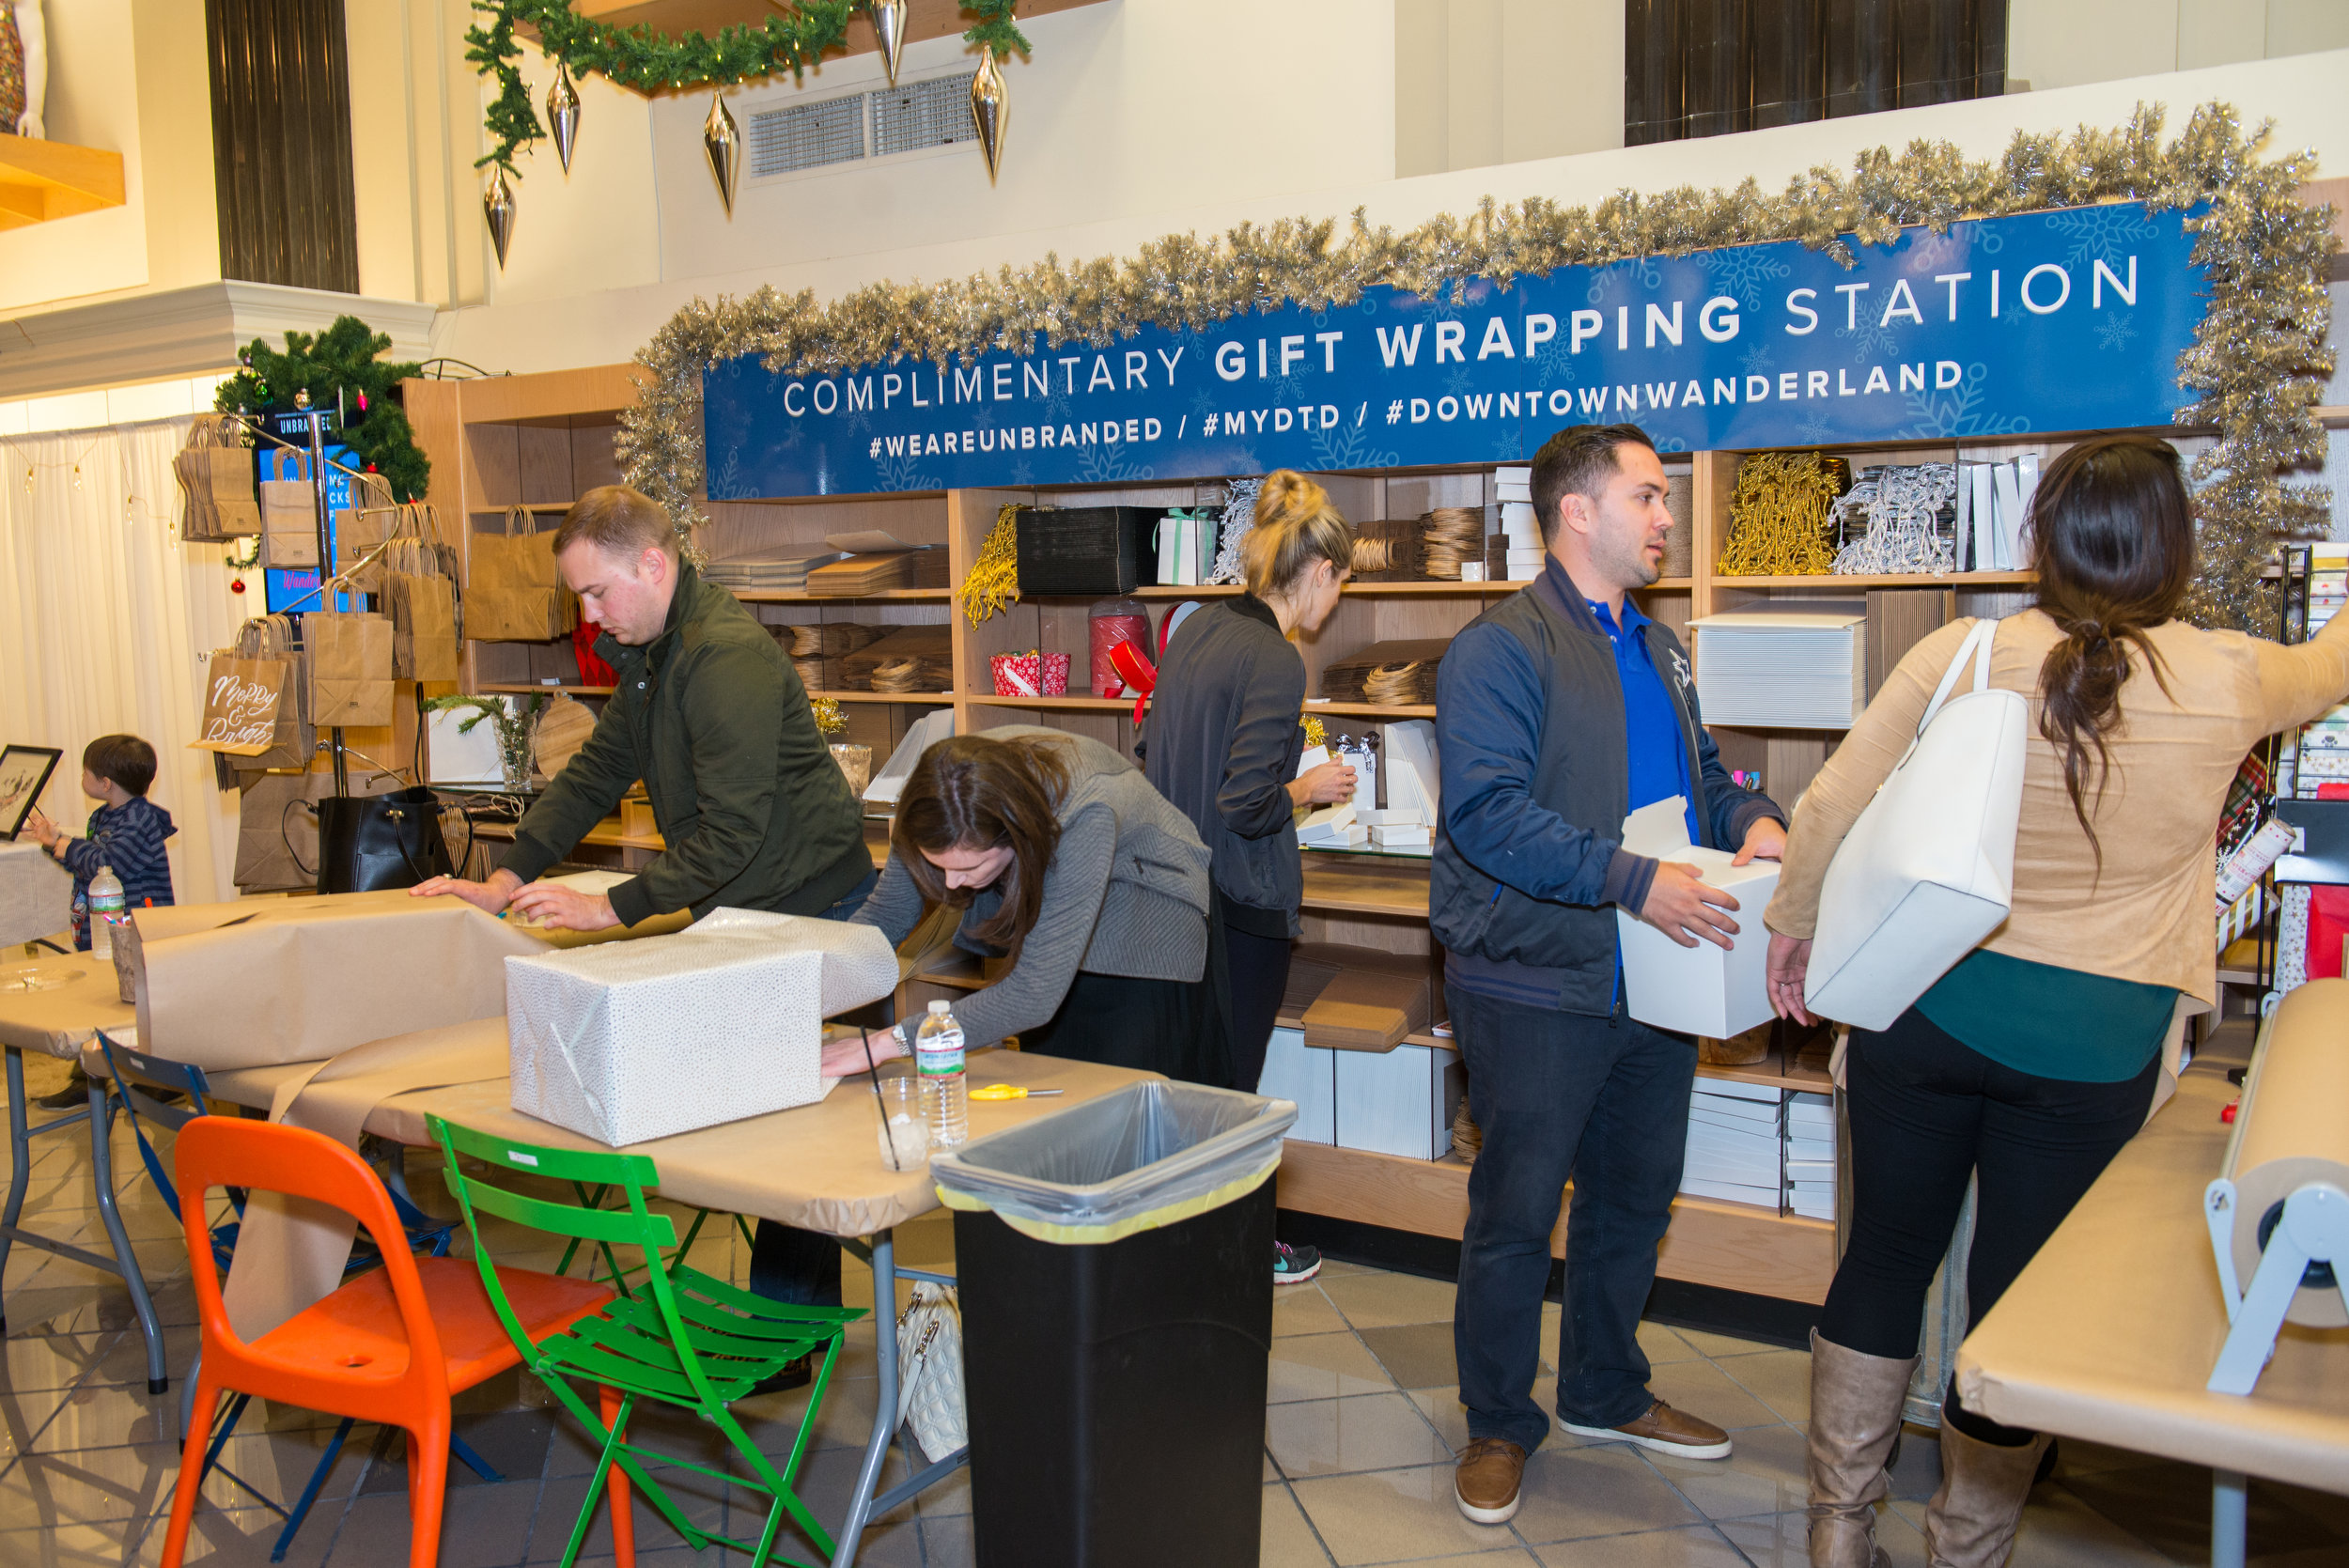 Gift-Wrapping & Other Fun - A complimentary gift-wrapping station is provided for all you Santas, and super-fast internet is provided by AT&T so you can surf in peace!